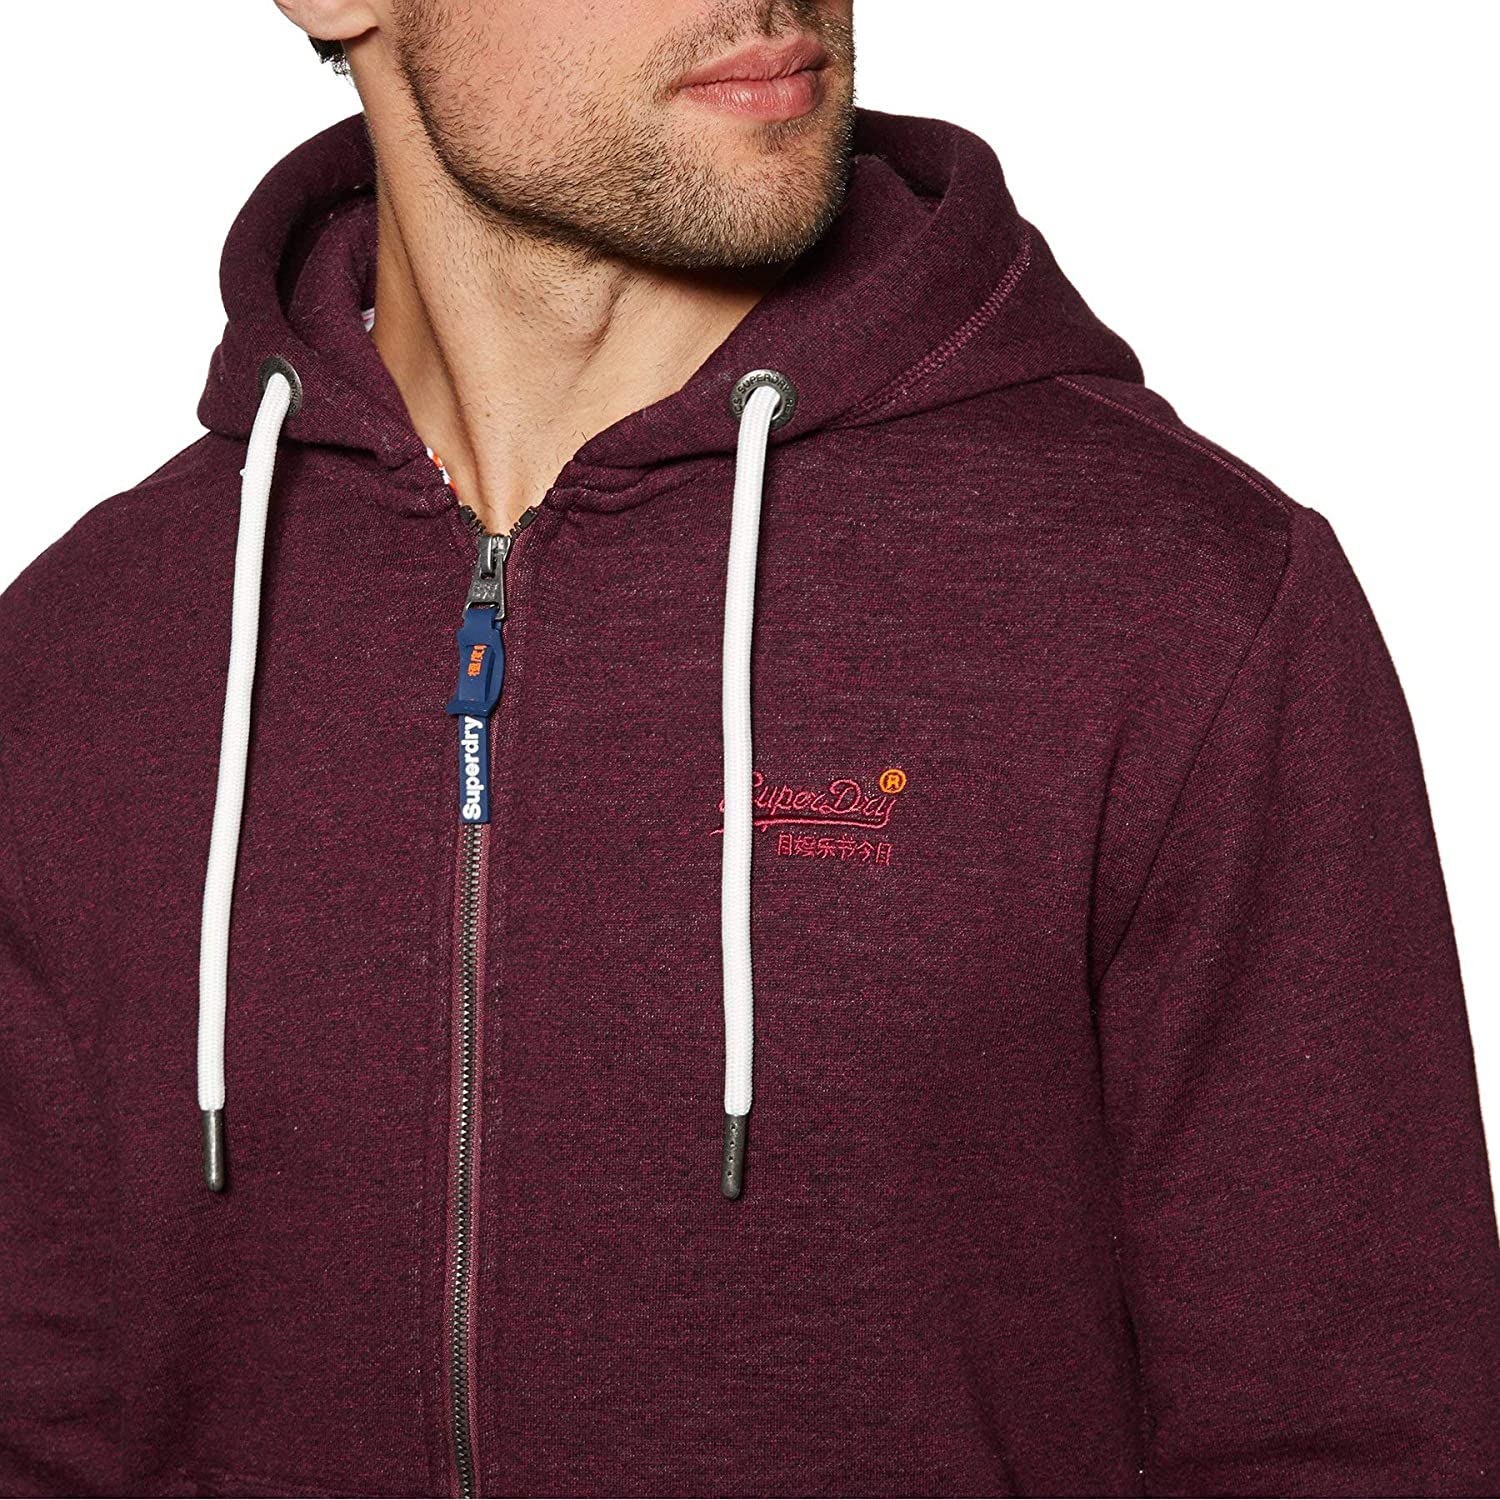 Superdry Orange Label Classic Mens Hoody Zip Rich Teal Grit All Sizes